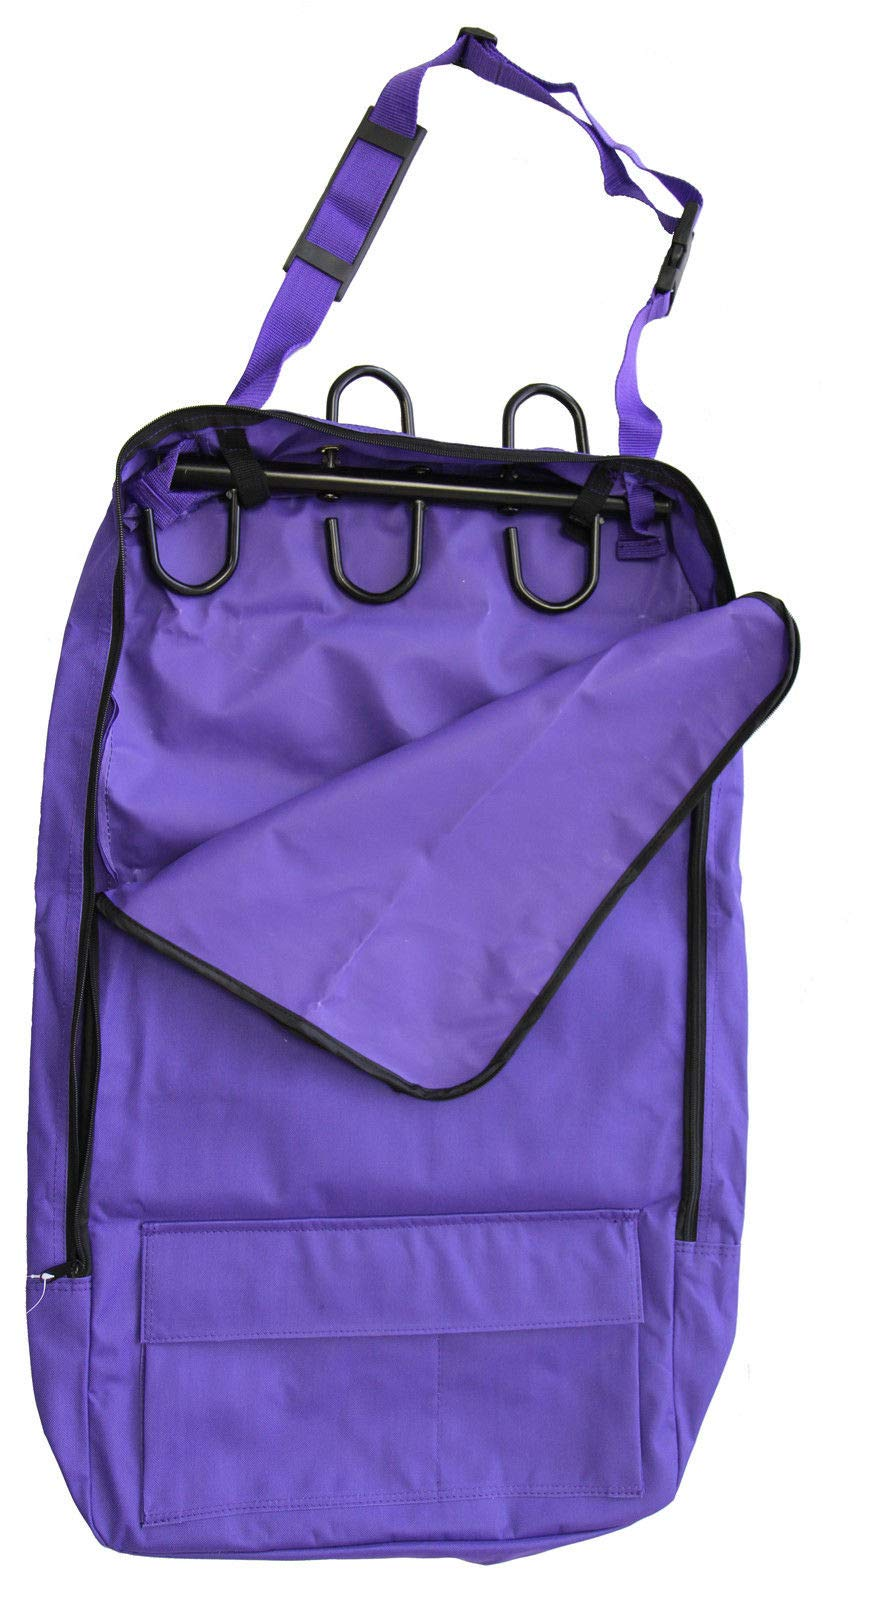 Deluxe Bridle Halter Tote Bag with Removable Tack Rack Purple